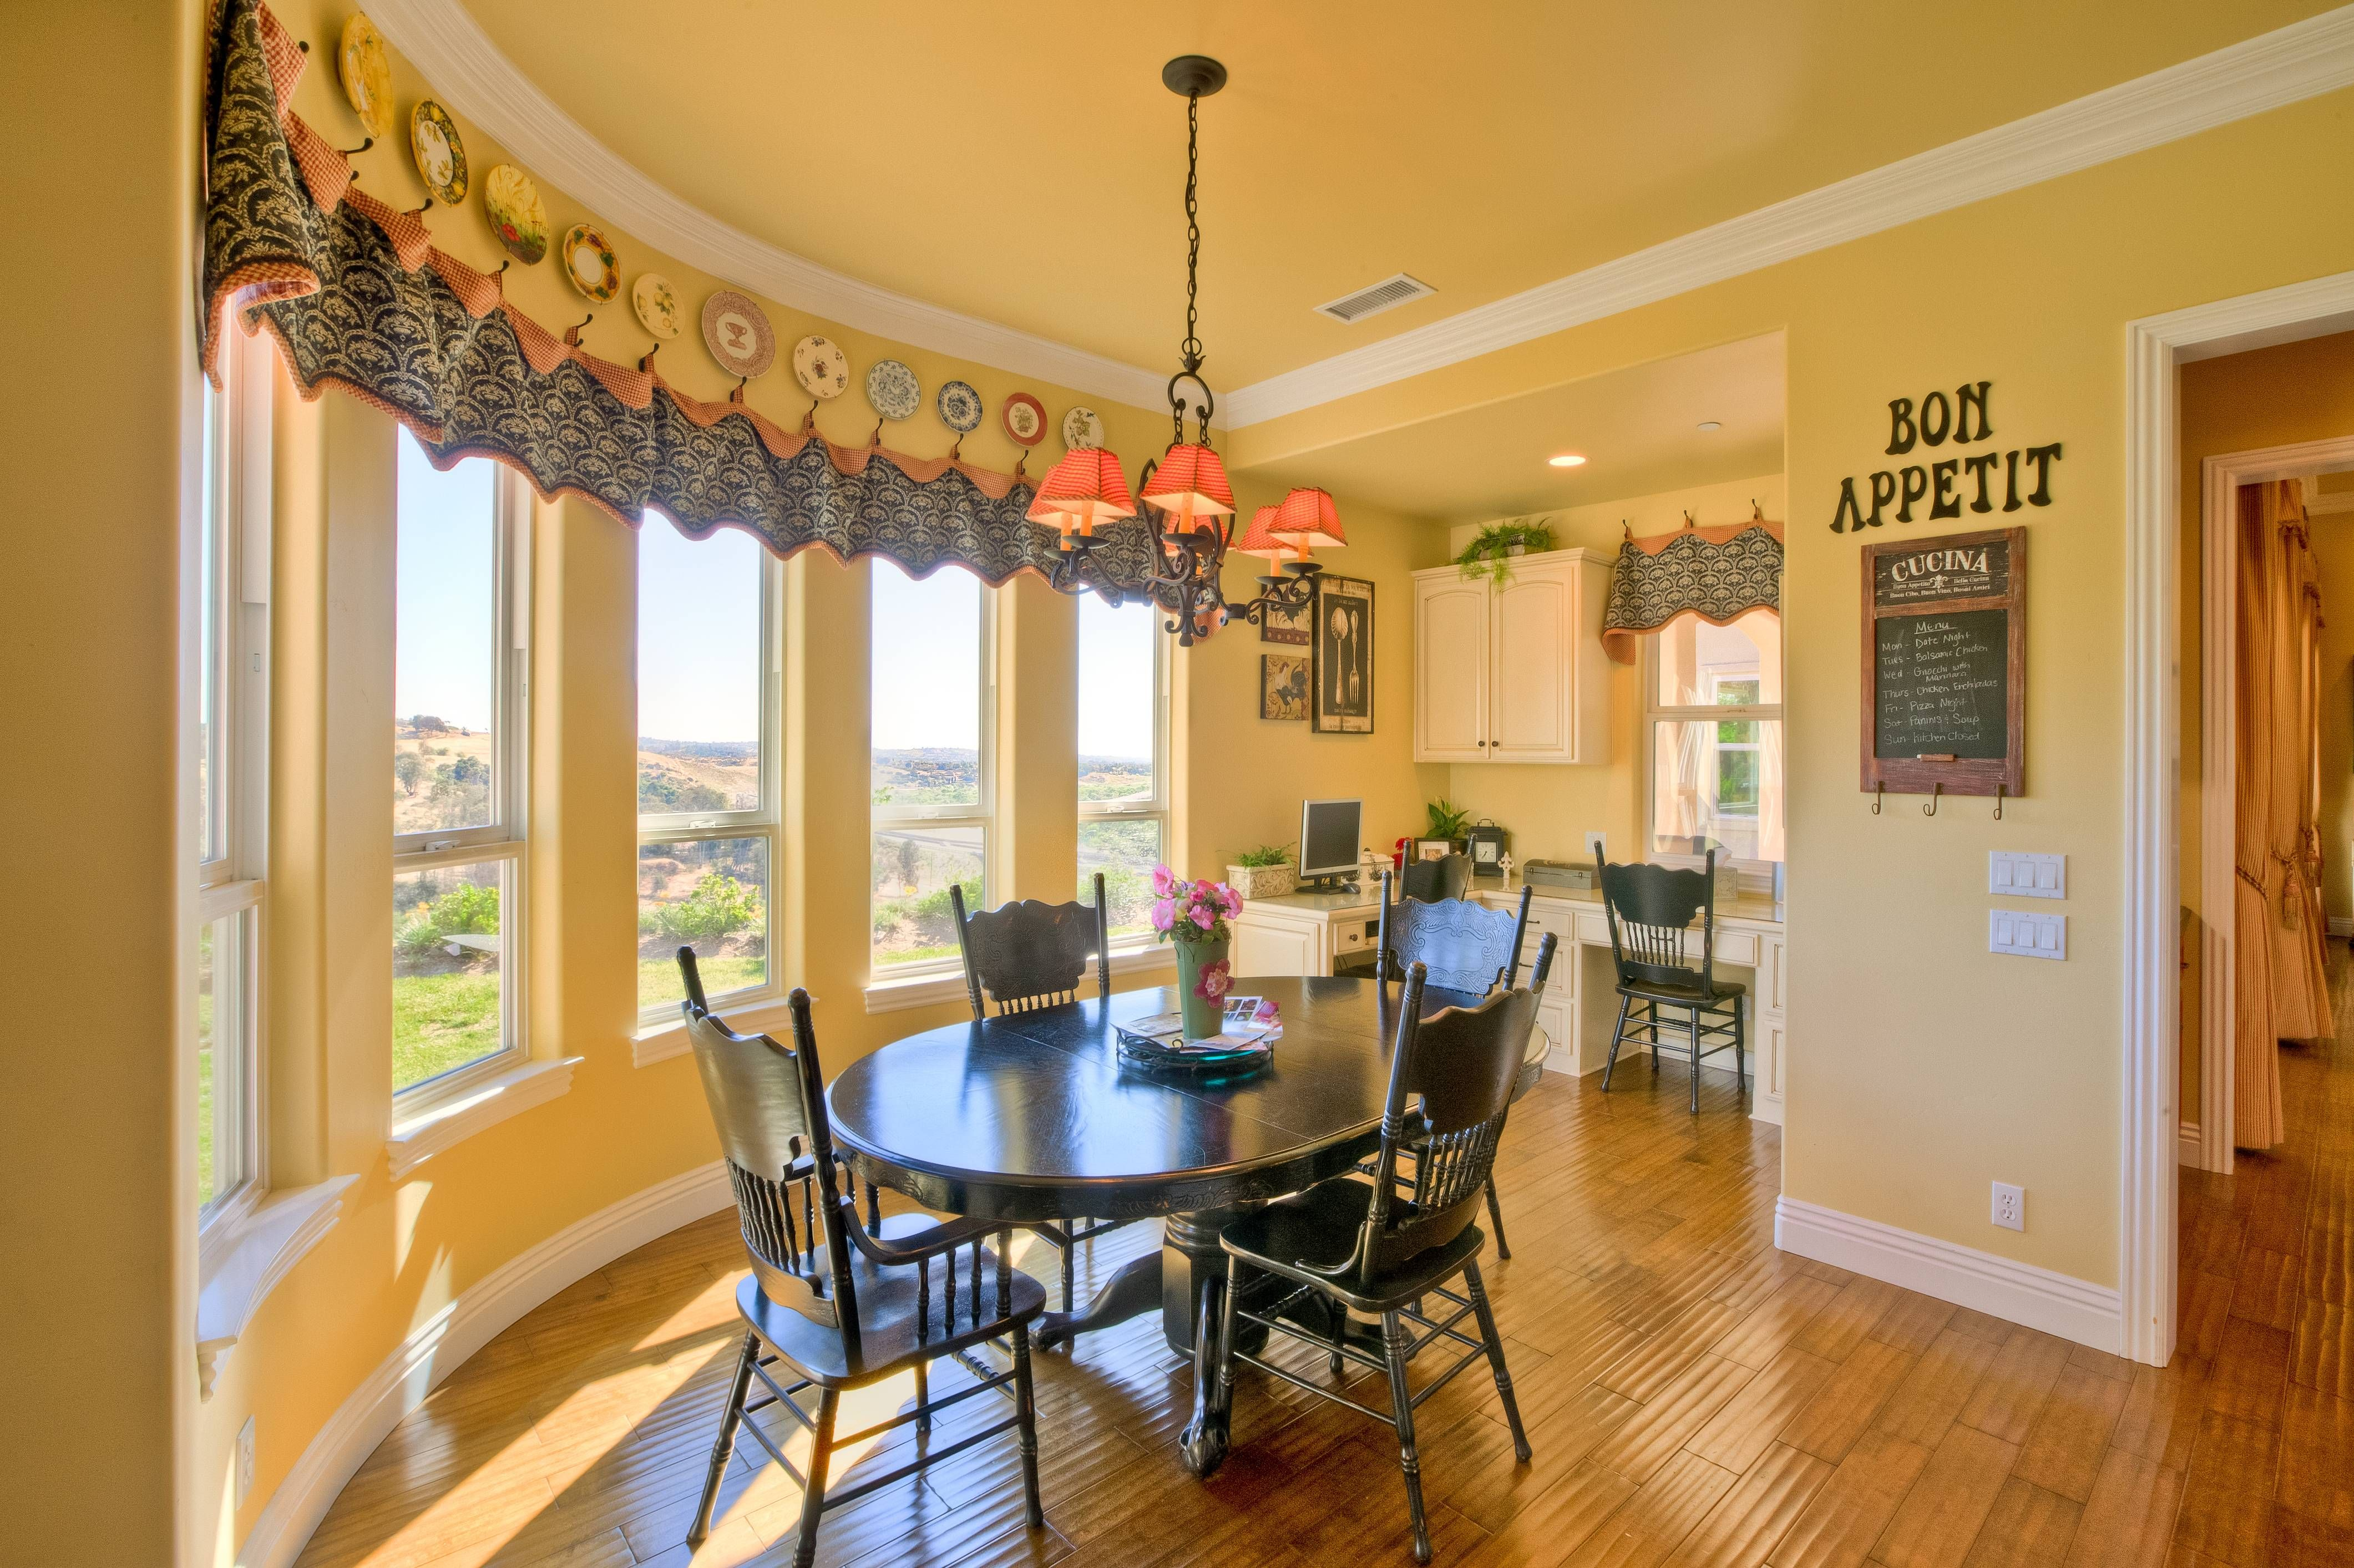 This Eat In Area Is One Of The Finest You Ll Ever Find Five Tall Bay Windows Drench The Home In Natural Light And Showcase Lovely With Images Bay Window Home Decor